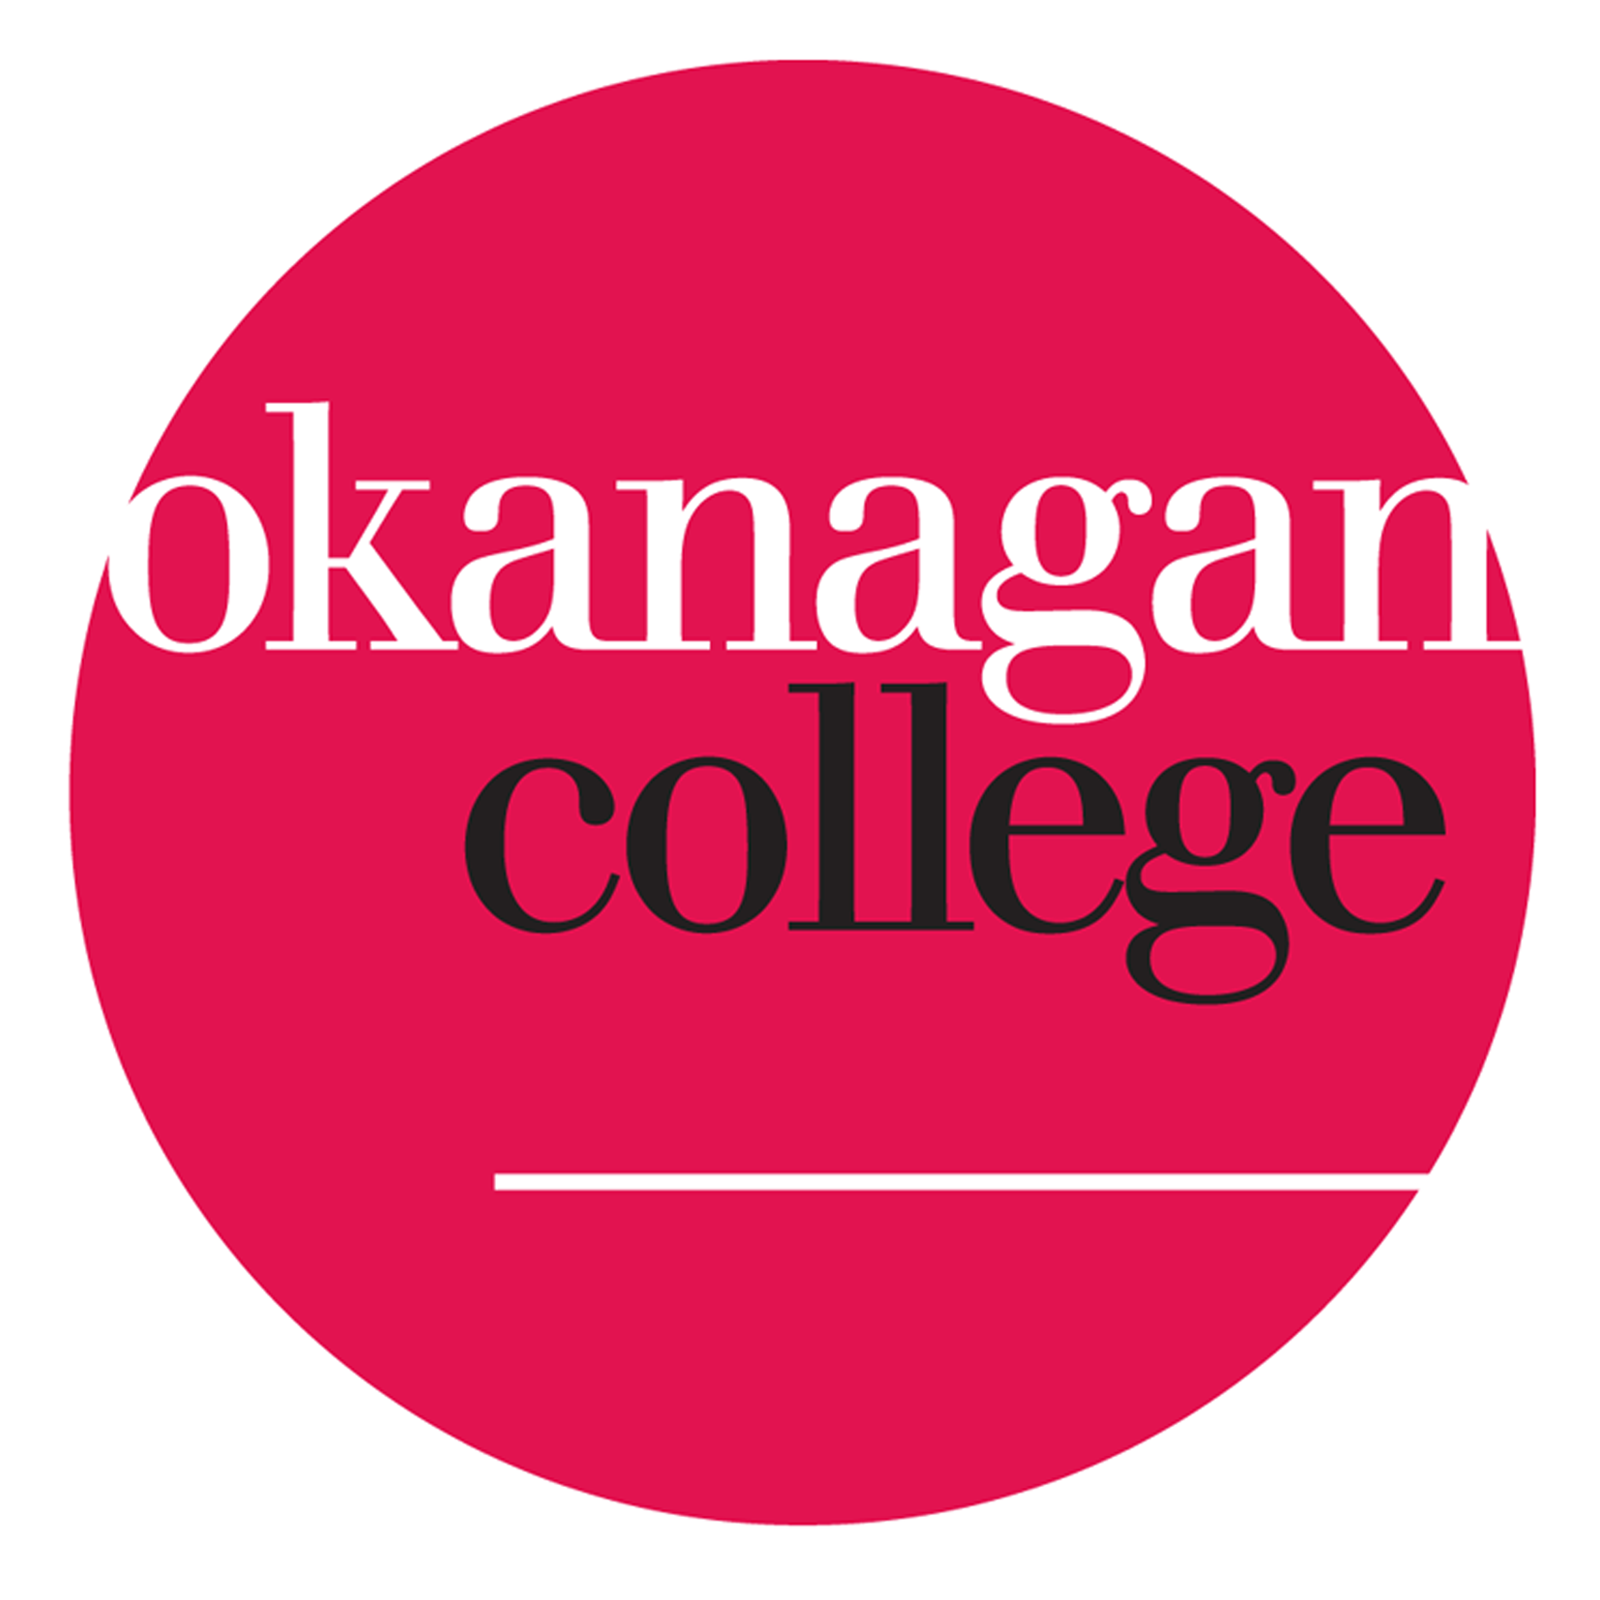 Okcollegecolrgb transparent youtube